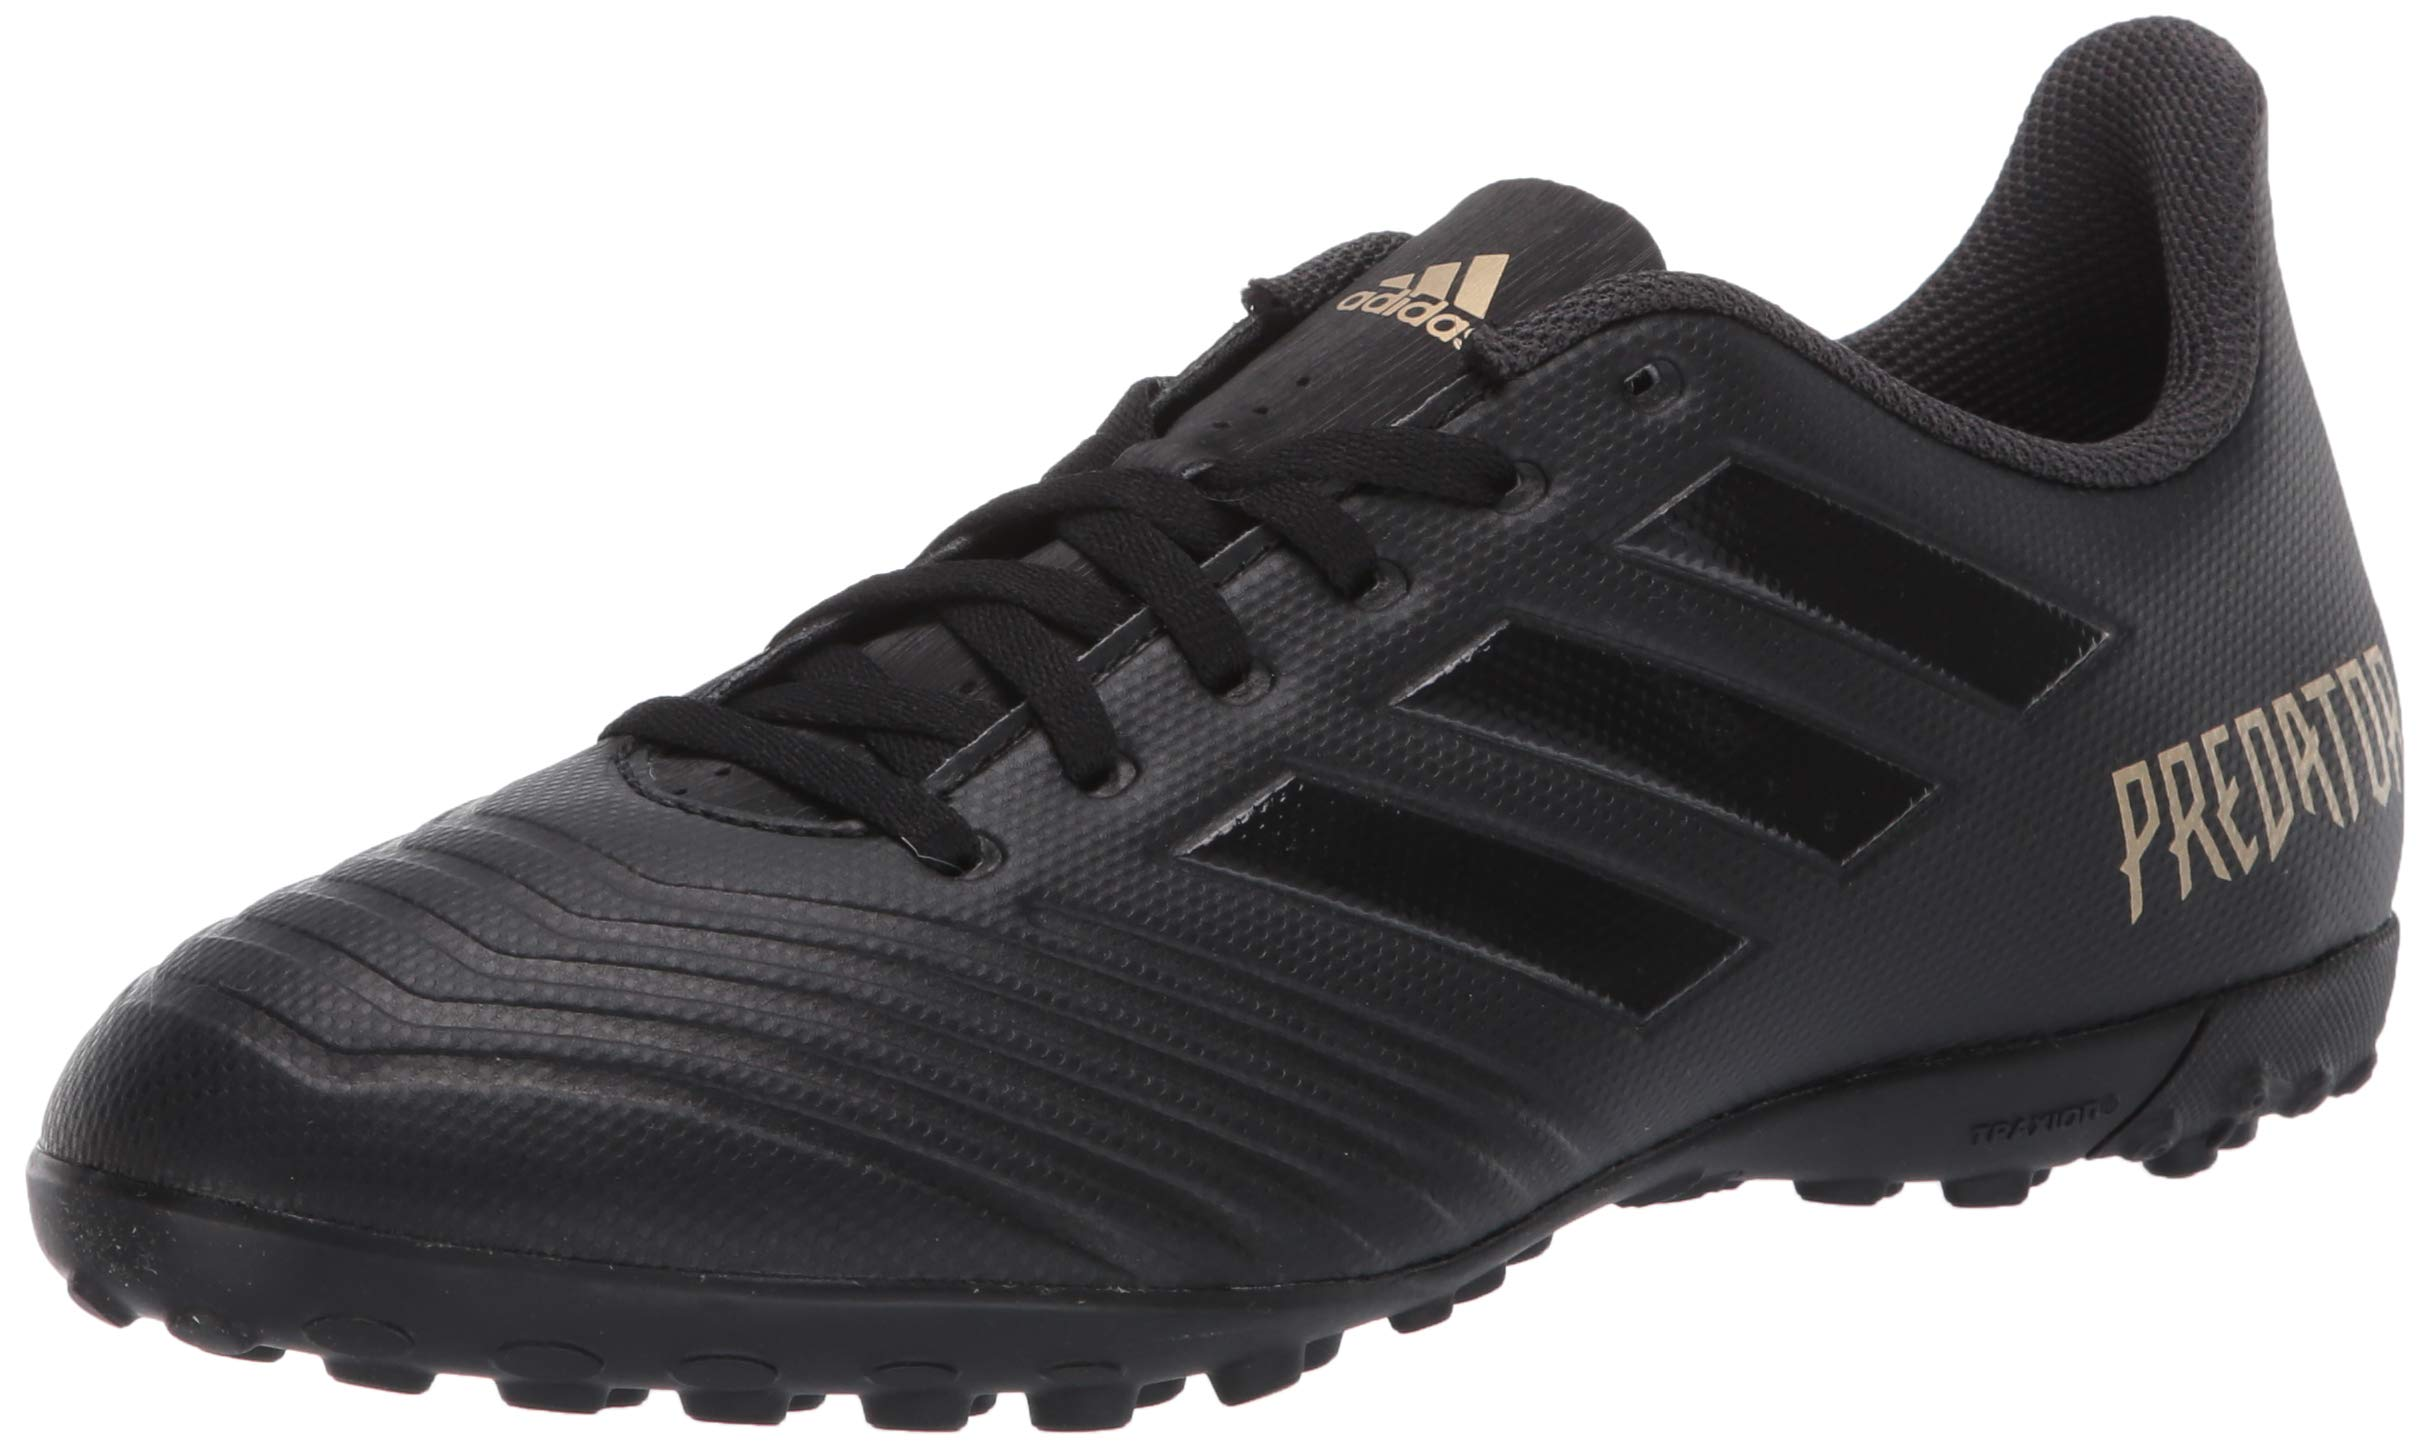 adidas Men's Predator 19.4 Turf Soccer Shoe Utility Black, 10.5 M US by adidas